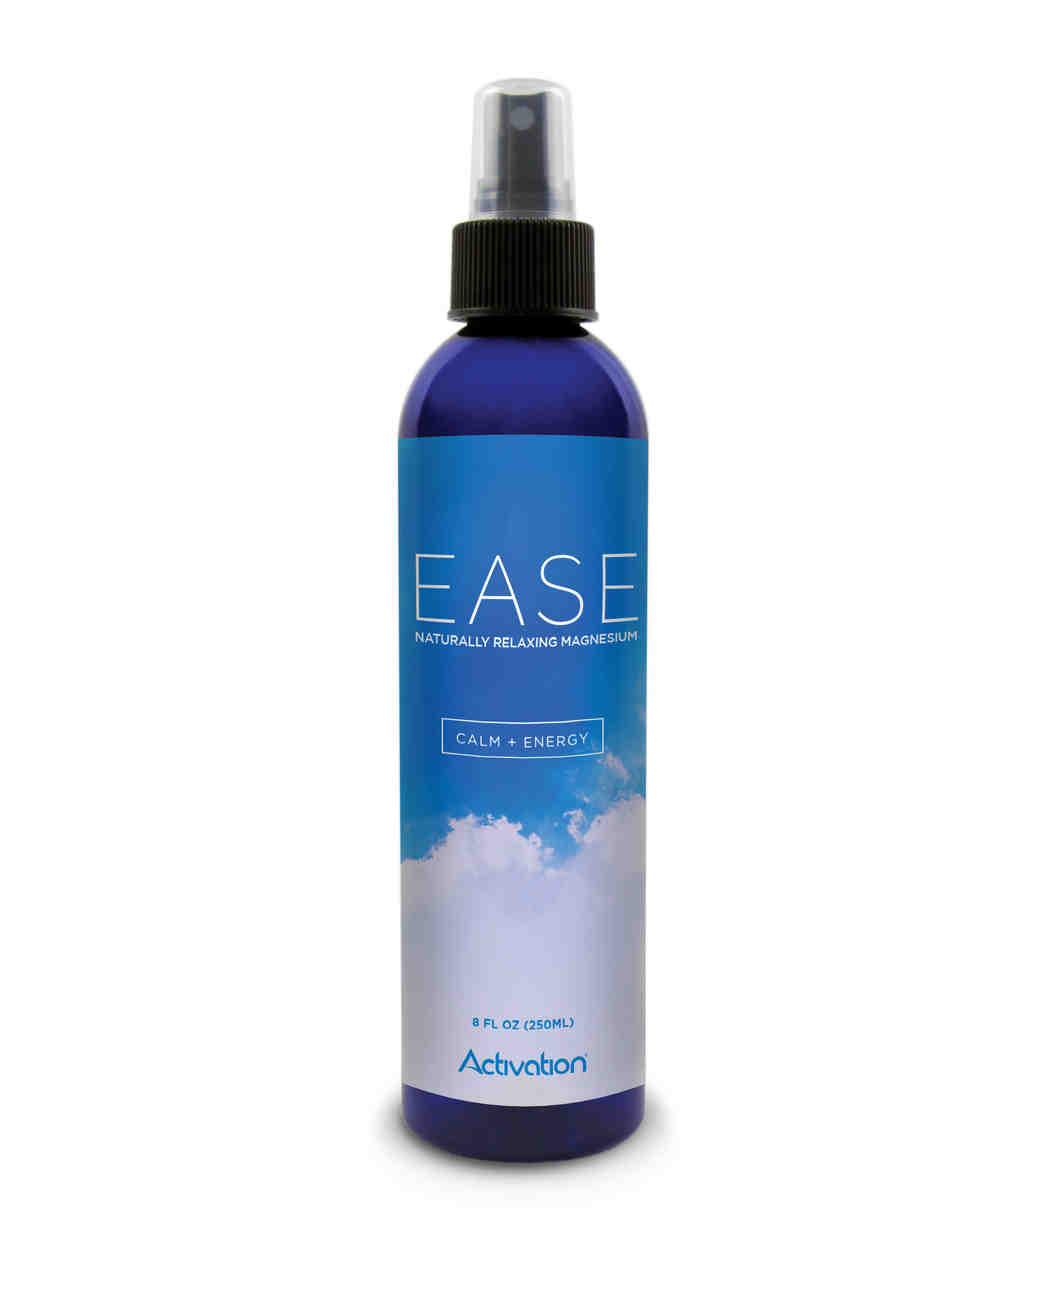 ease-250ml-bottleimage-print